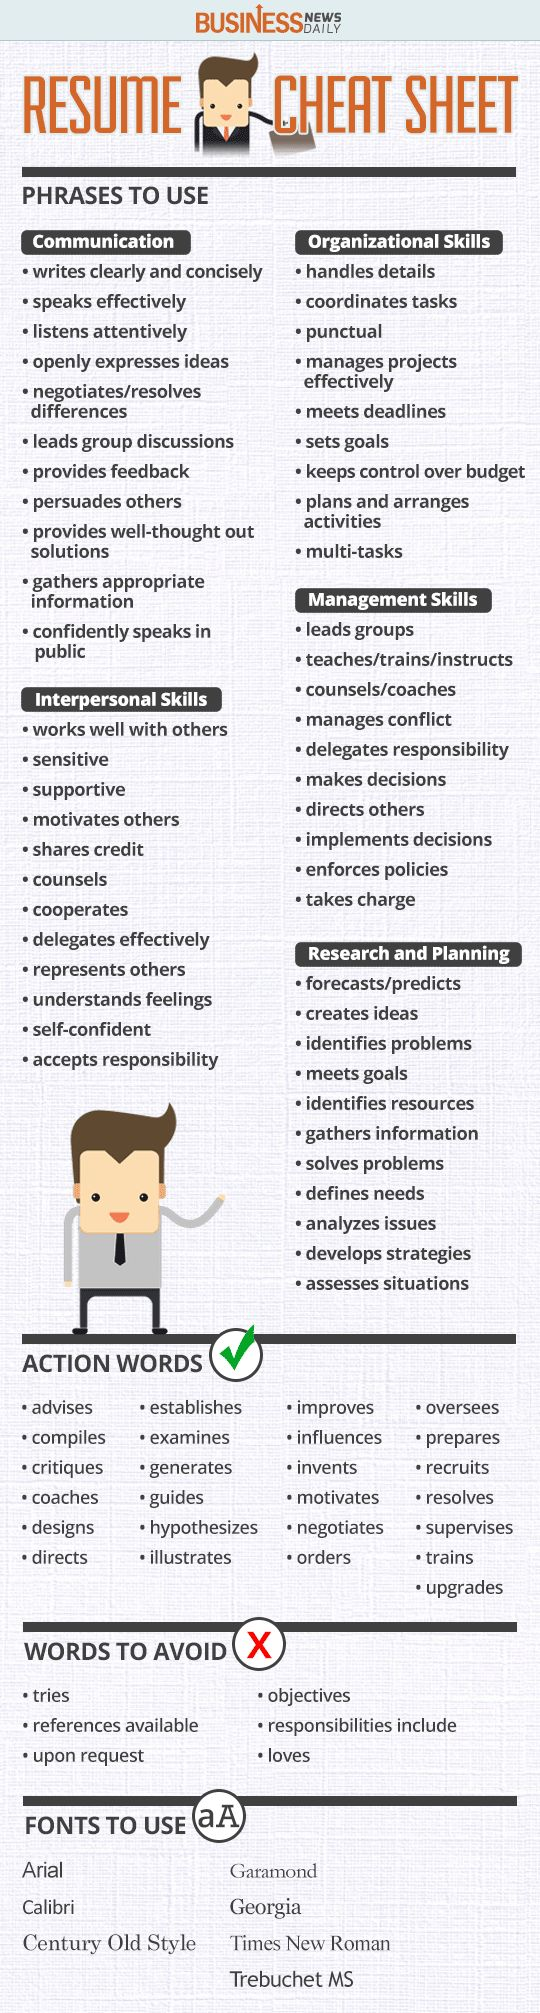 Opposenewapstandardsus  Sweet  Ideas About Resume On Pinterest  Cv Format Resume Cv And  With Interesting Resume Cheat Sheet Infographic Andrews Almost Done With A Complete Unit On Employment Which With Astonishing Resume Writers Chicago Also Free Resume Program In Addition Resume Tracking Software And Resume Format On Word As Well As Pharmacy Technician Resume Template Additionally Resume For Student With No Experience From Pinterestcom With Opposenewapstandardsus  Interesting  Ideas About Resume On Pinterest  Cv Format Resume Cv And  With Astonishing Resume Cheat Sheet Infographic Andrews Almost Done With A Complete Unit On Employment Which And Sweet Resume Writers Chicago Also Free Resume Program In Addition Resume Tracking Software From Pinterestcom